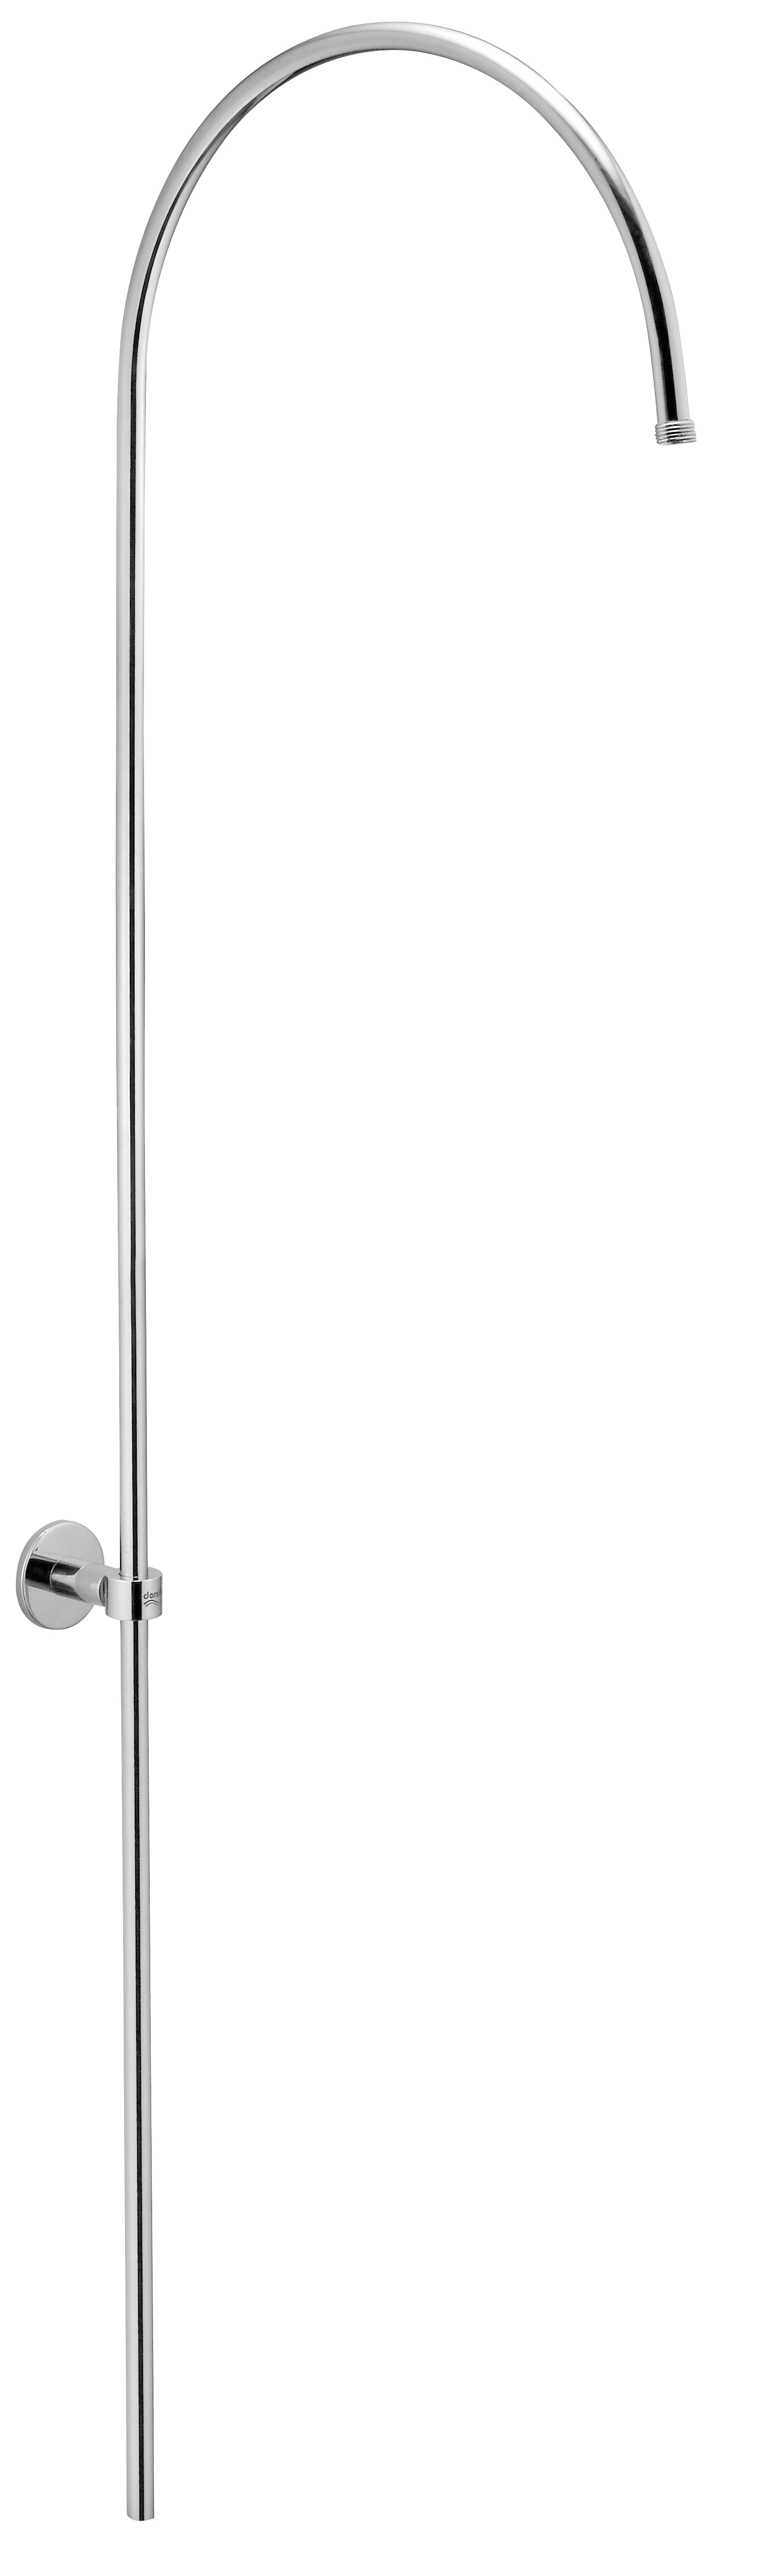 Exposed Over Head Shower Arm With Holding Bracket